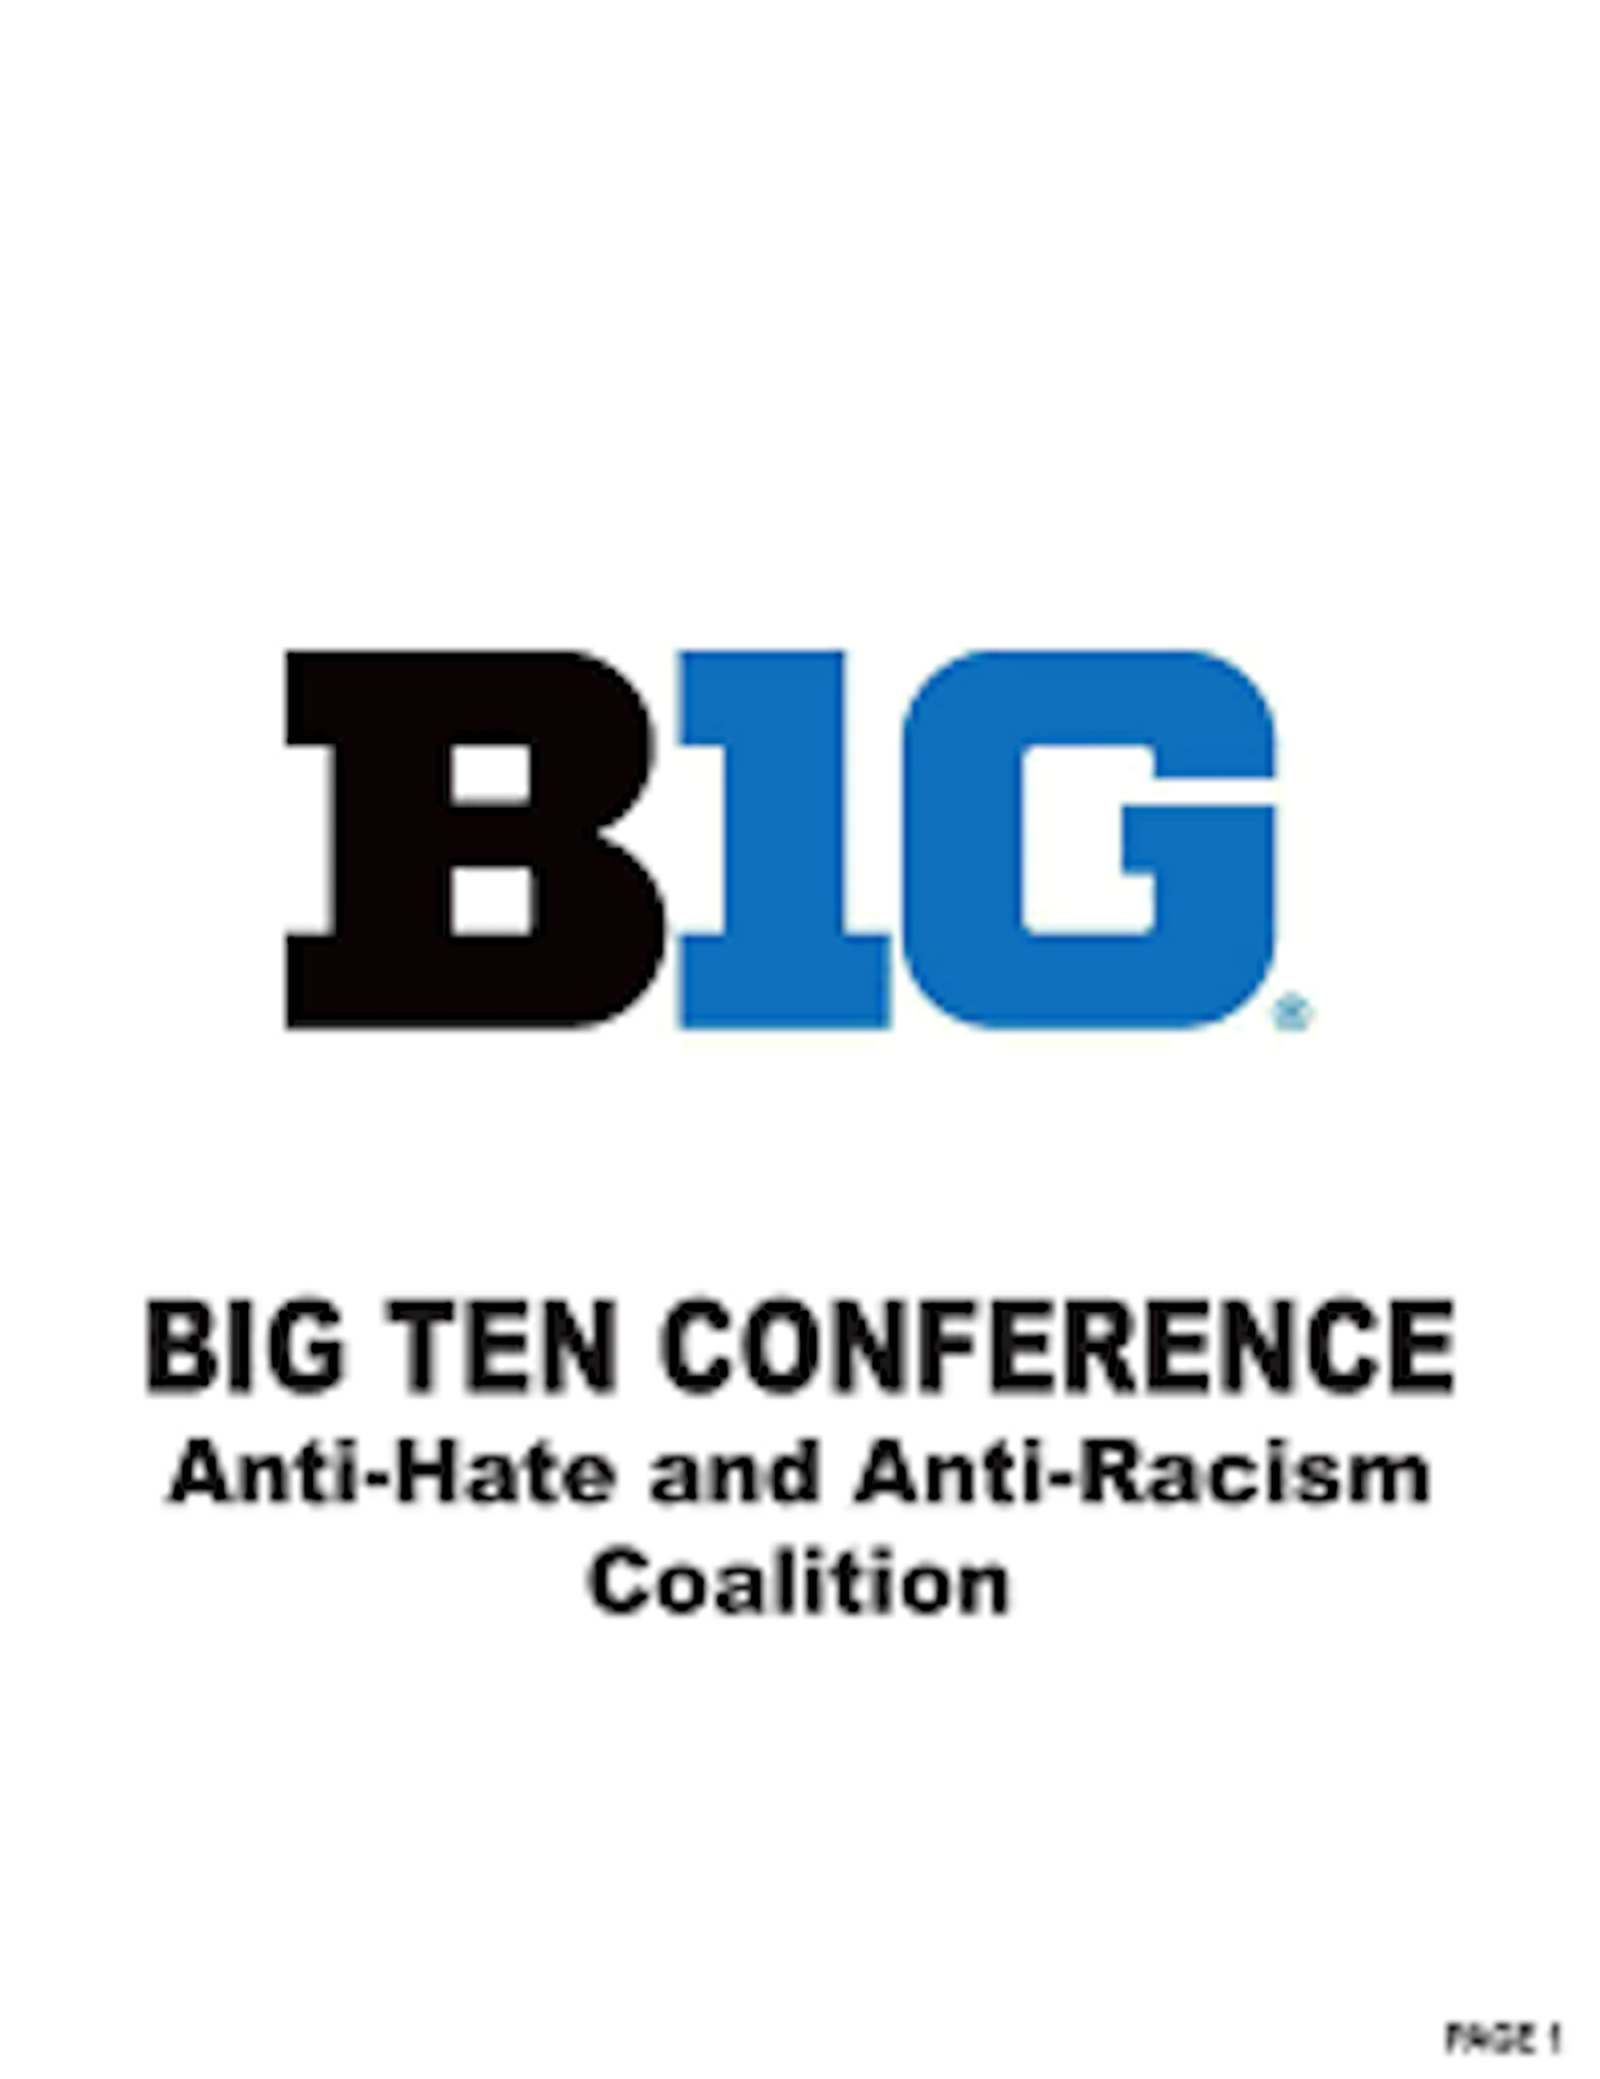 The Big Ten's Anti-Hate and Anti-Racism Coalition Logo